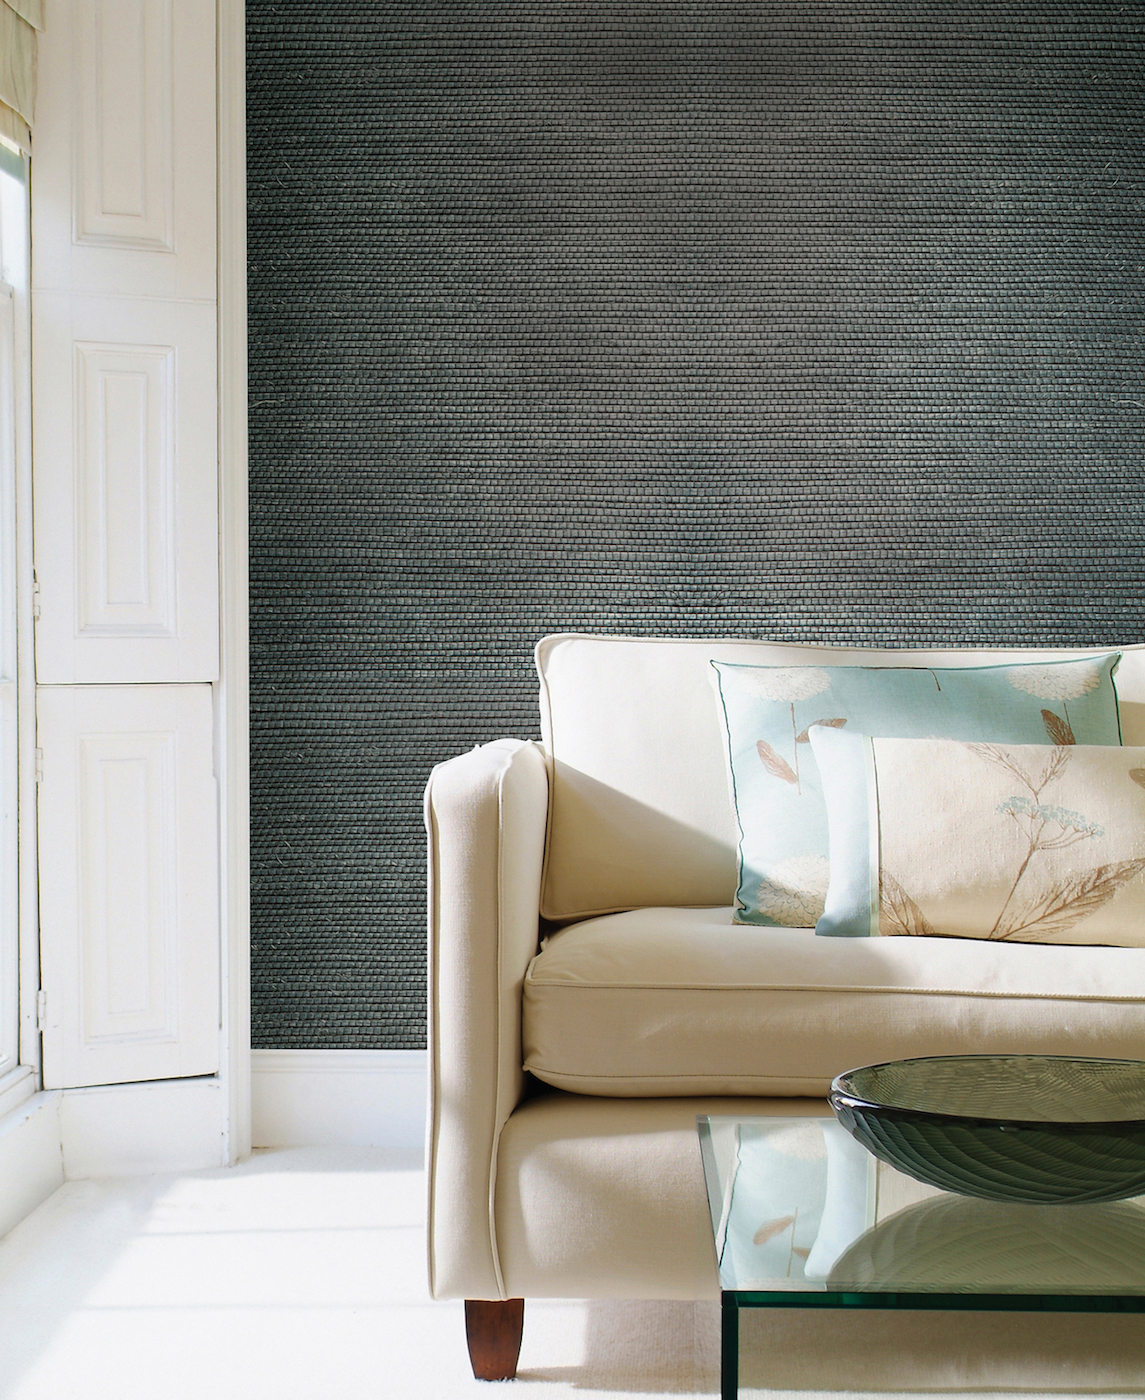 Trend Alert Grasscloth Wallpaper: Your Questions About Grasscloth Wallpaper Answered